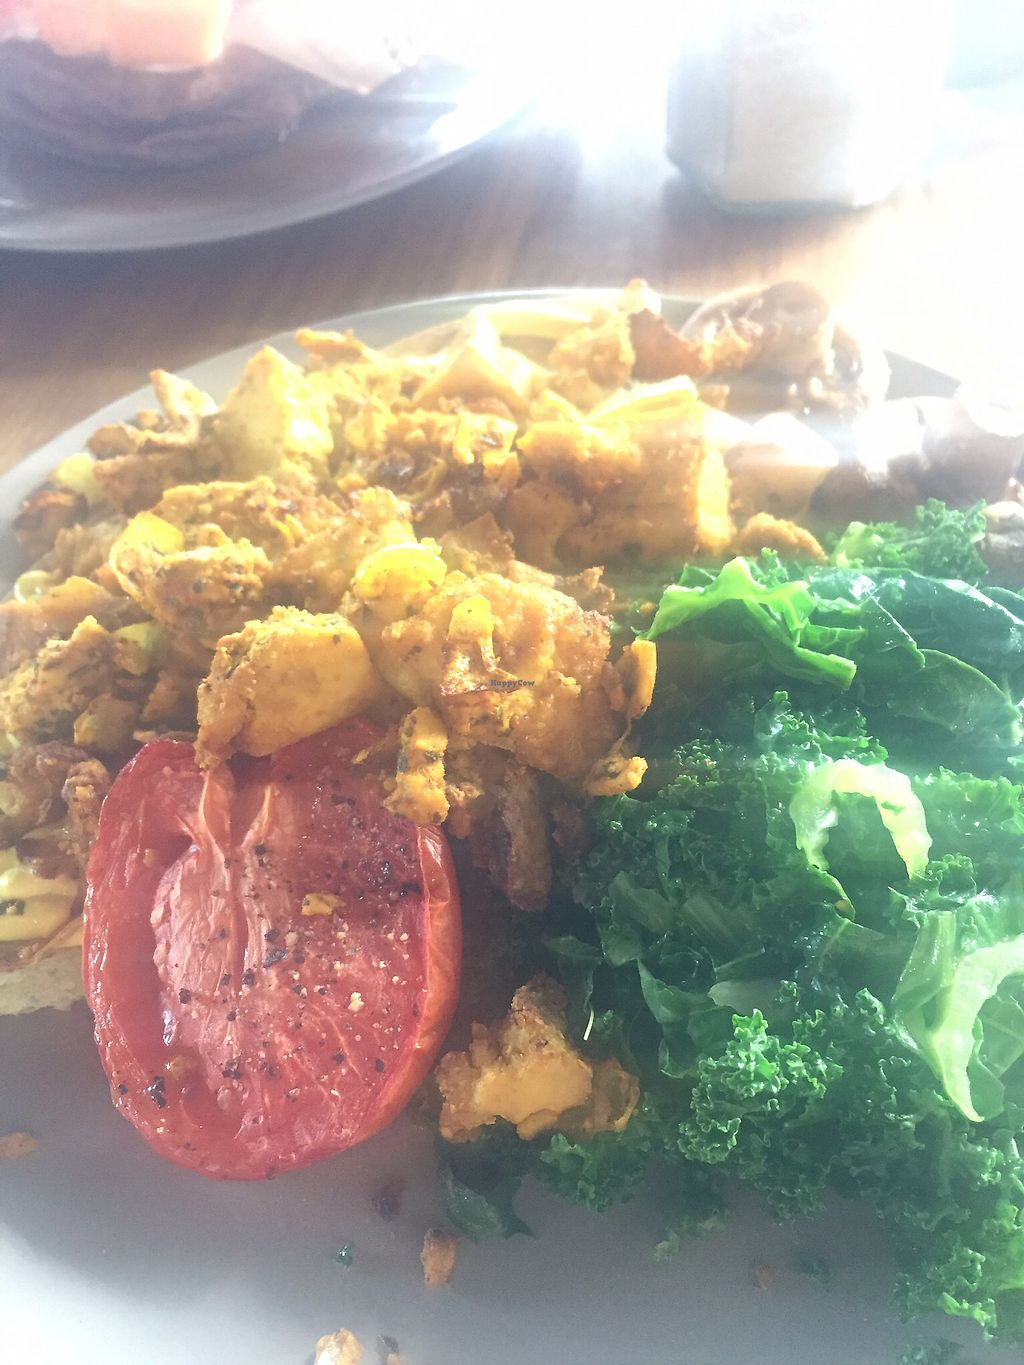 """Photo of Onda Food House  by <a href=""""/members/profile/Kittybiscuit"""">Kittybiscuit</a> <br/>scrambled tofu <br/> August 6, 2017  - <a href='/contact/abuse/image/82944/289538'>Report</a>"""